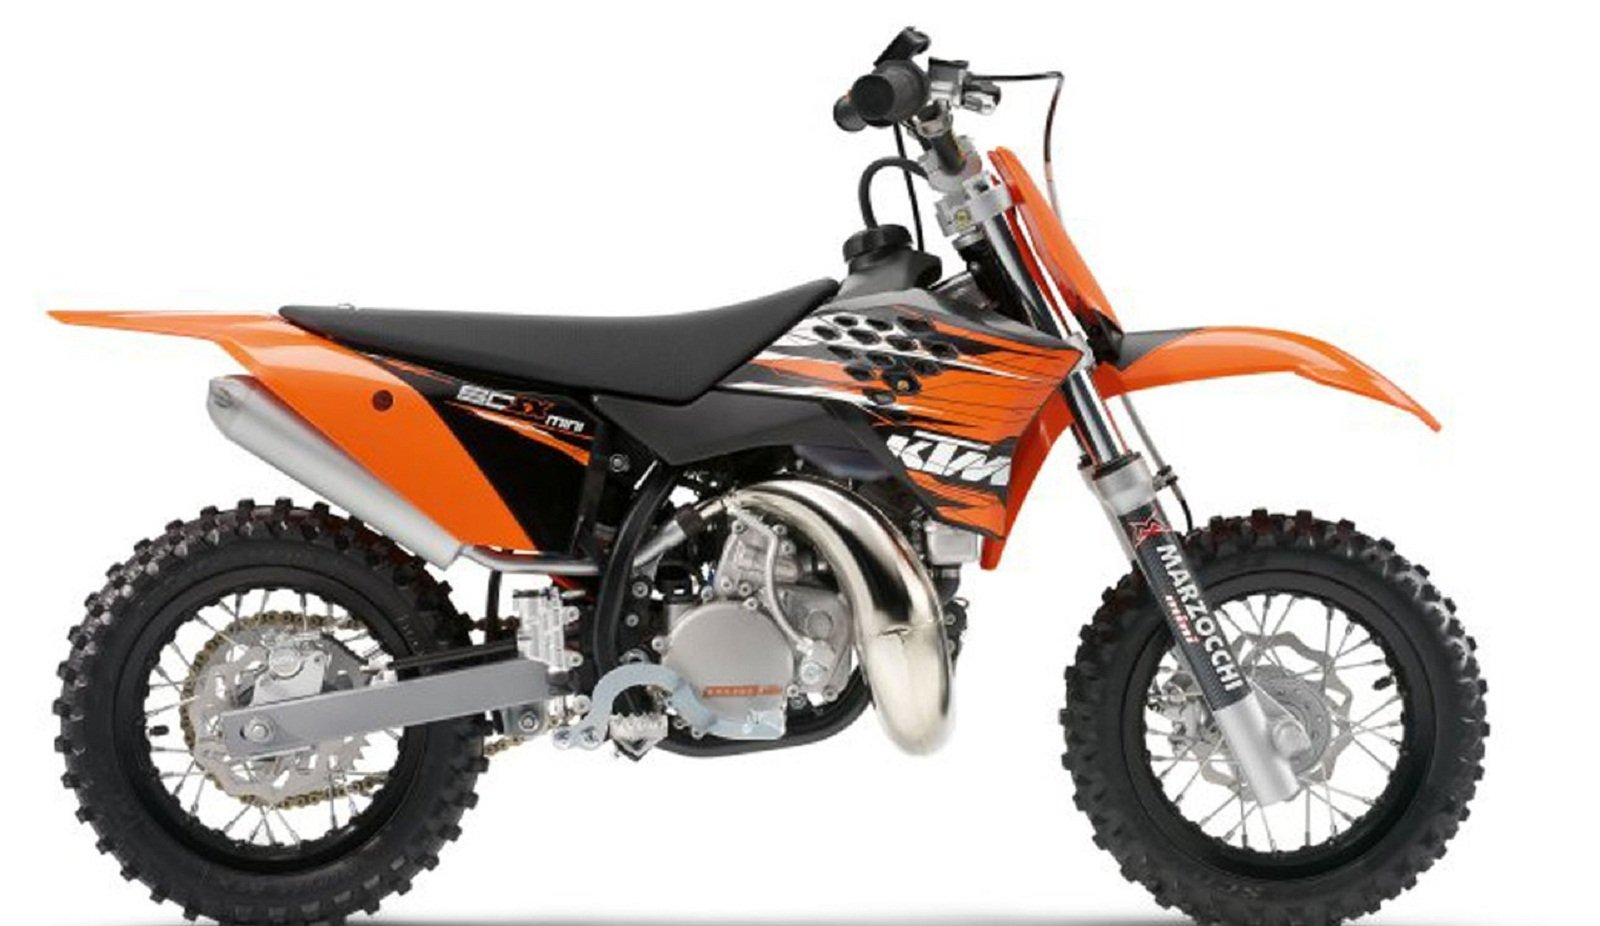 2012 ktm 50 sx mini picture 434949 motorcycle review top speed. Black Bedroom Furniture Sets. Home Design Ideas